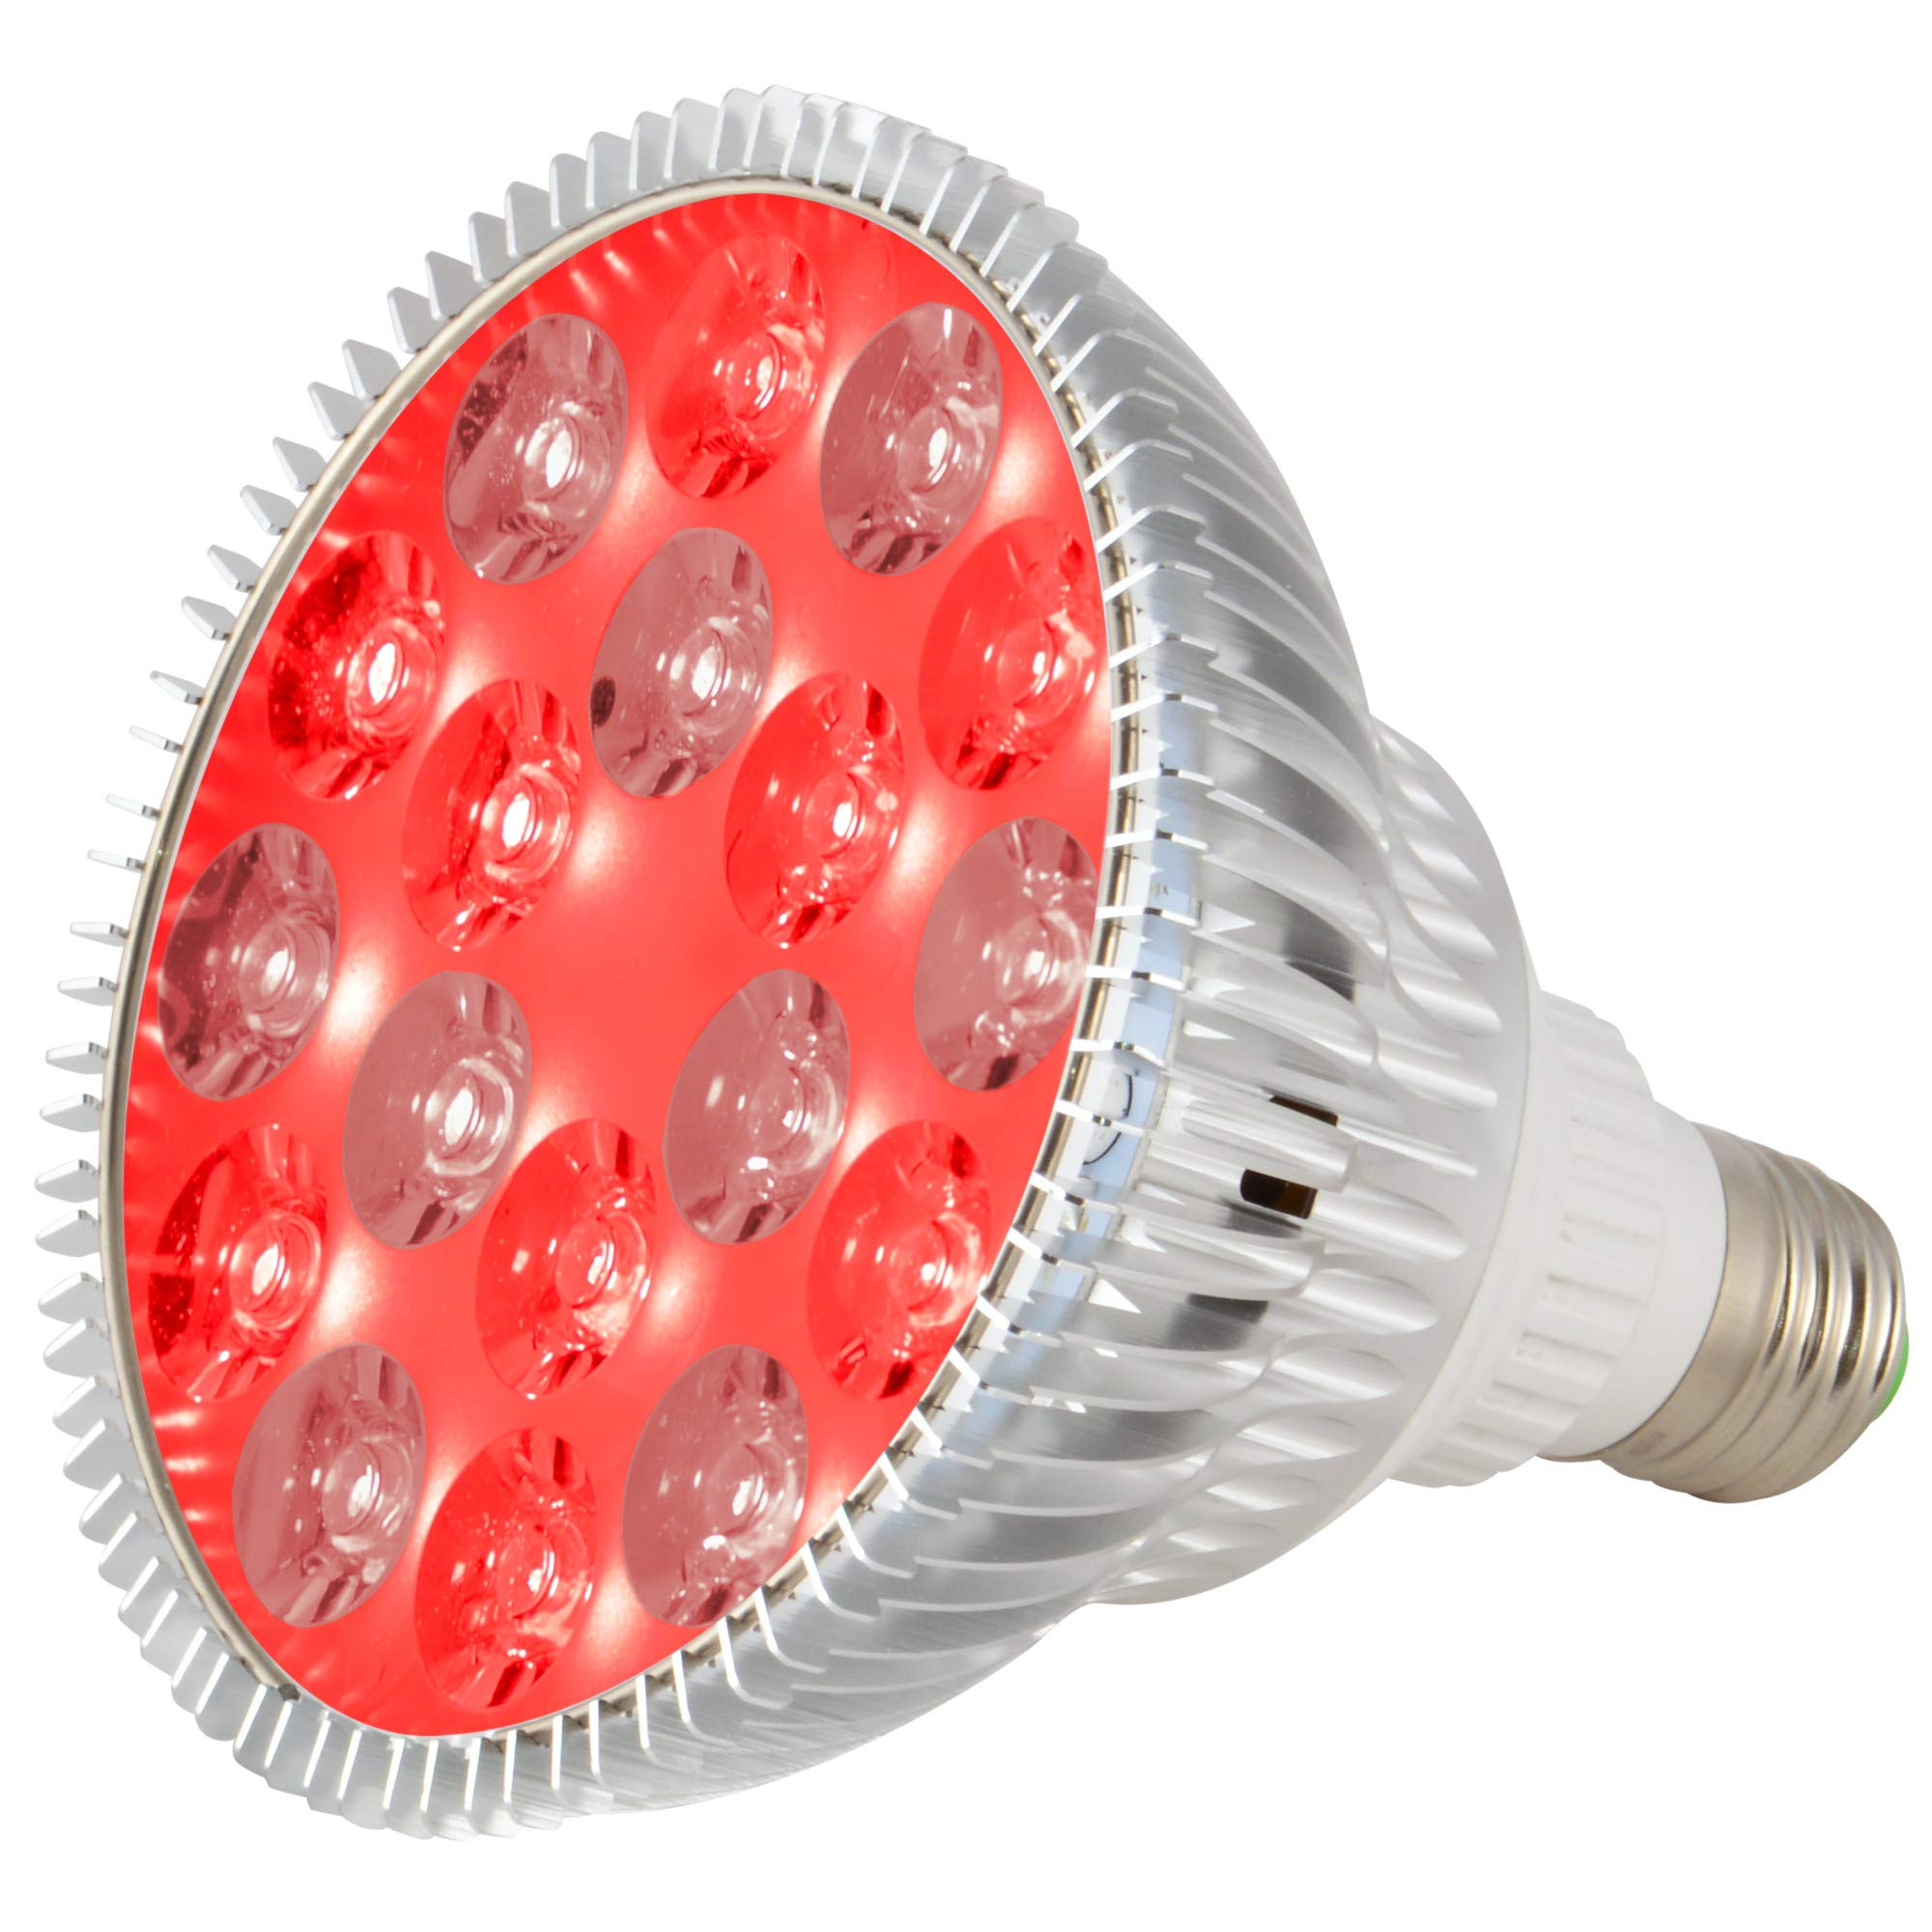 ABI LED Light Bulb for Red Light Therapy, 660nm Deep Red and 850nm Near Infrared Combo, 54W Class by ABI